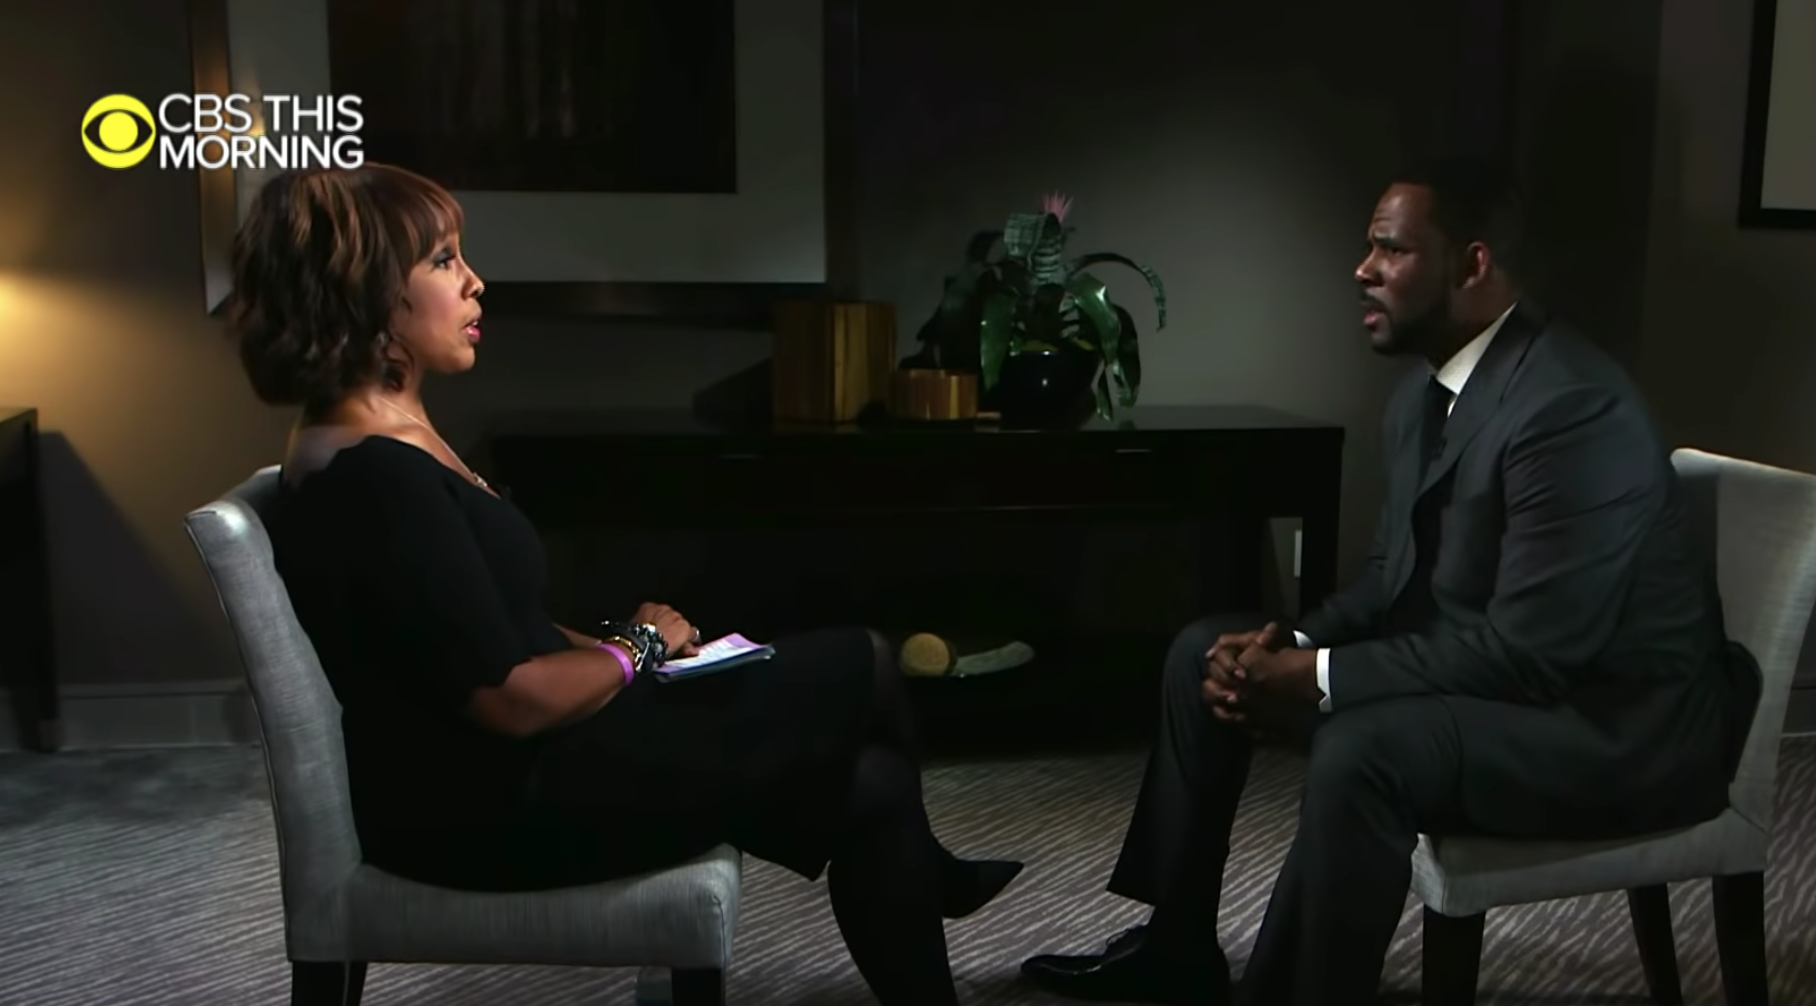 R. Kelly freed after someone paid $161,000 child support